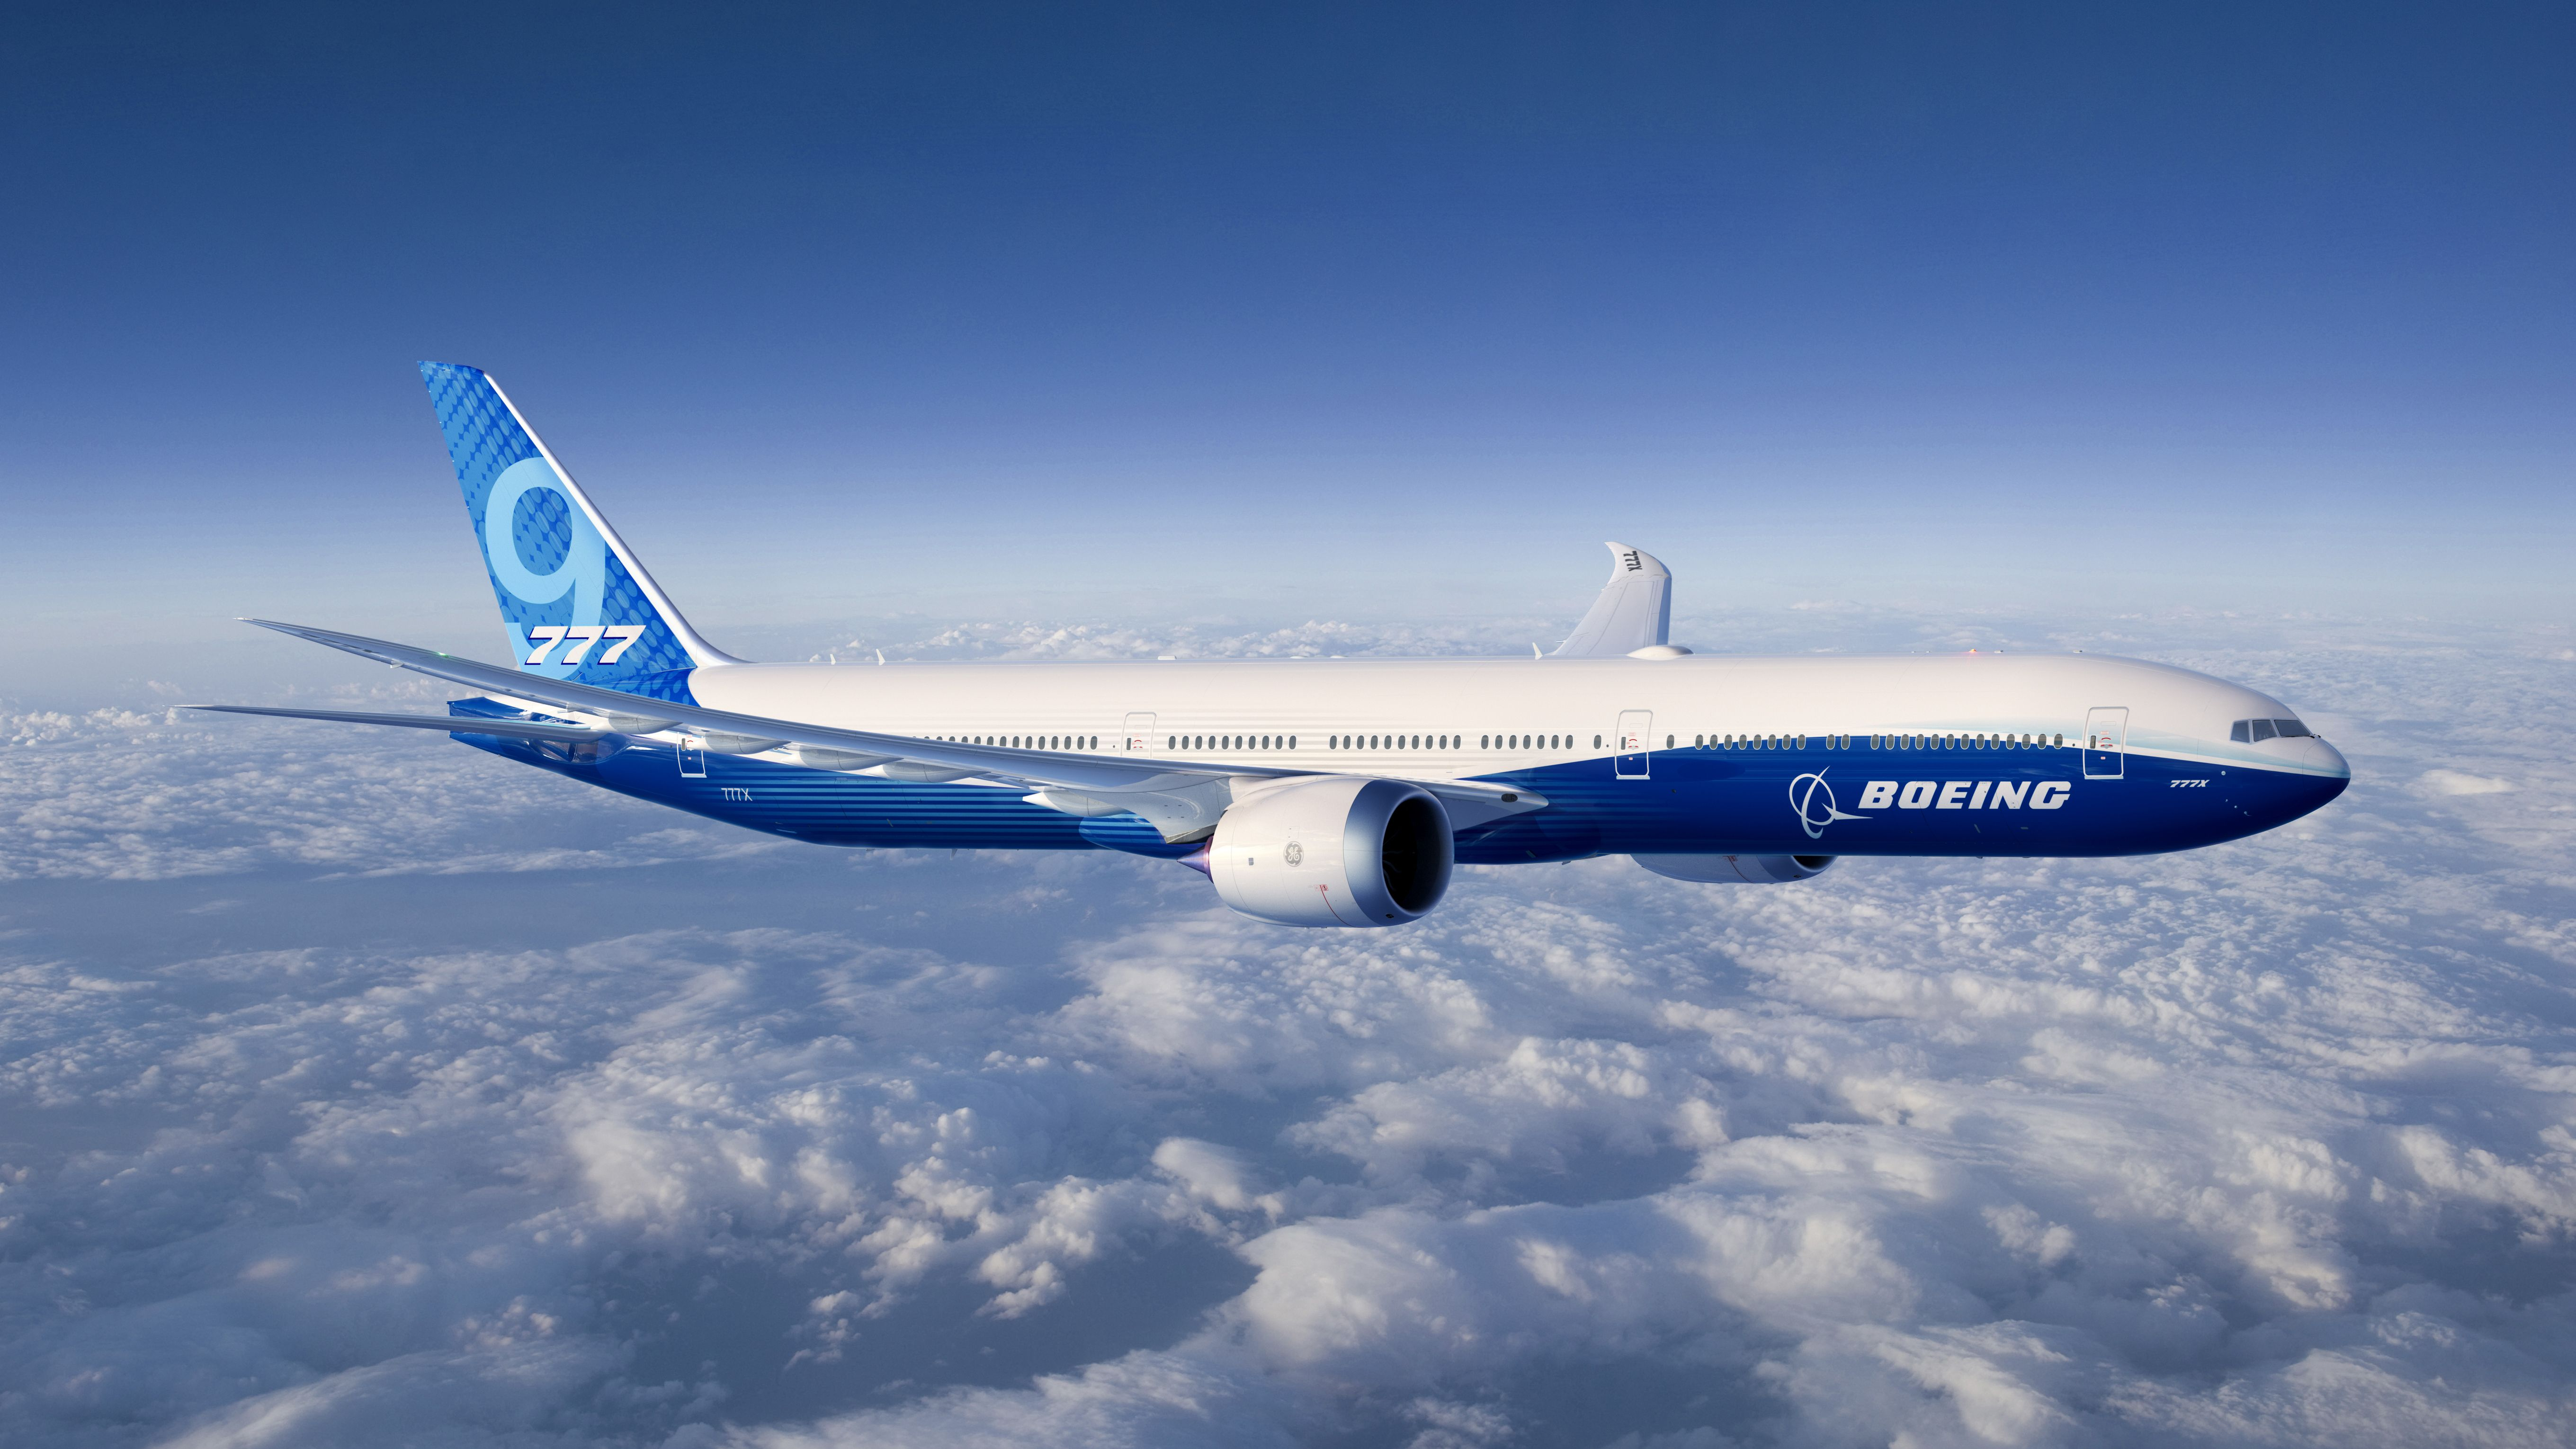 777x In New Boeing Livery Boeing Boeing 777 Traveling By Yourself